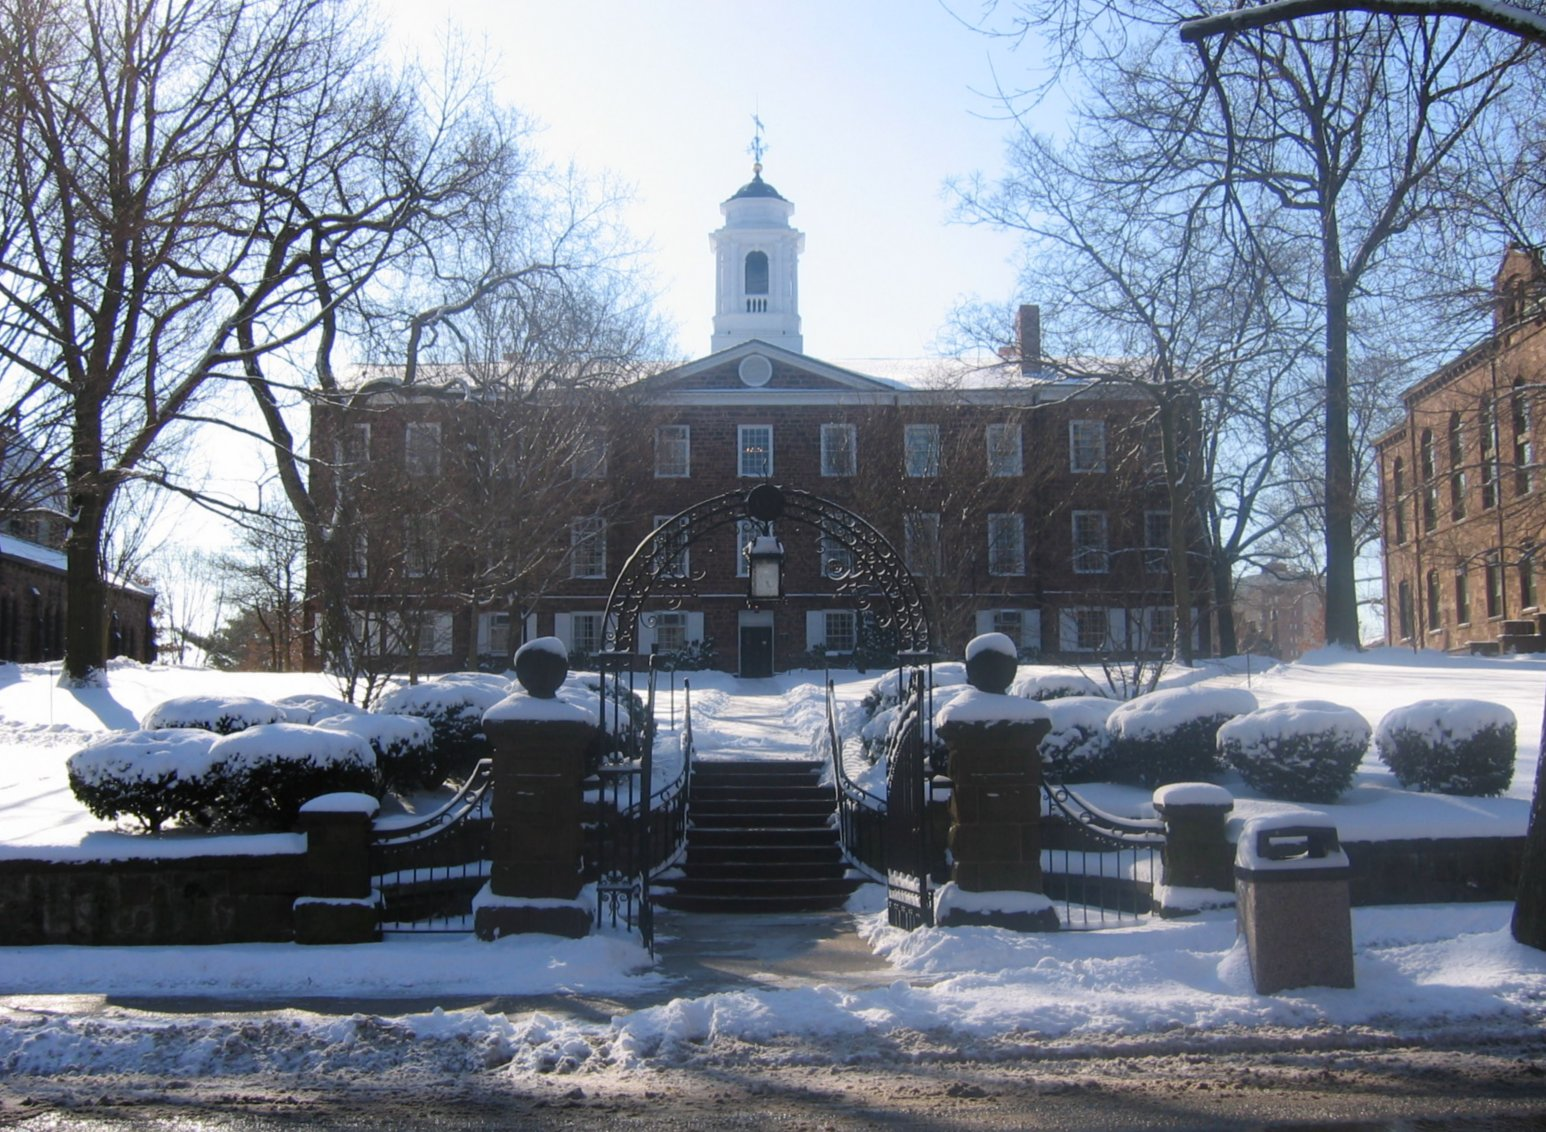 The campuses of Rutgers University (originally chartered as Queen's College in 1766) include buildings of a variety of architectural styles.